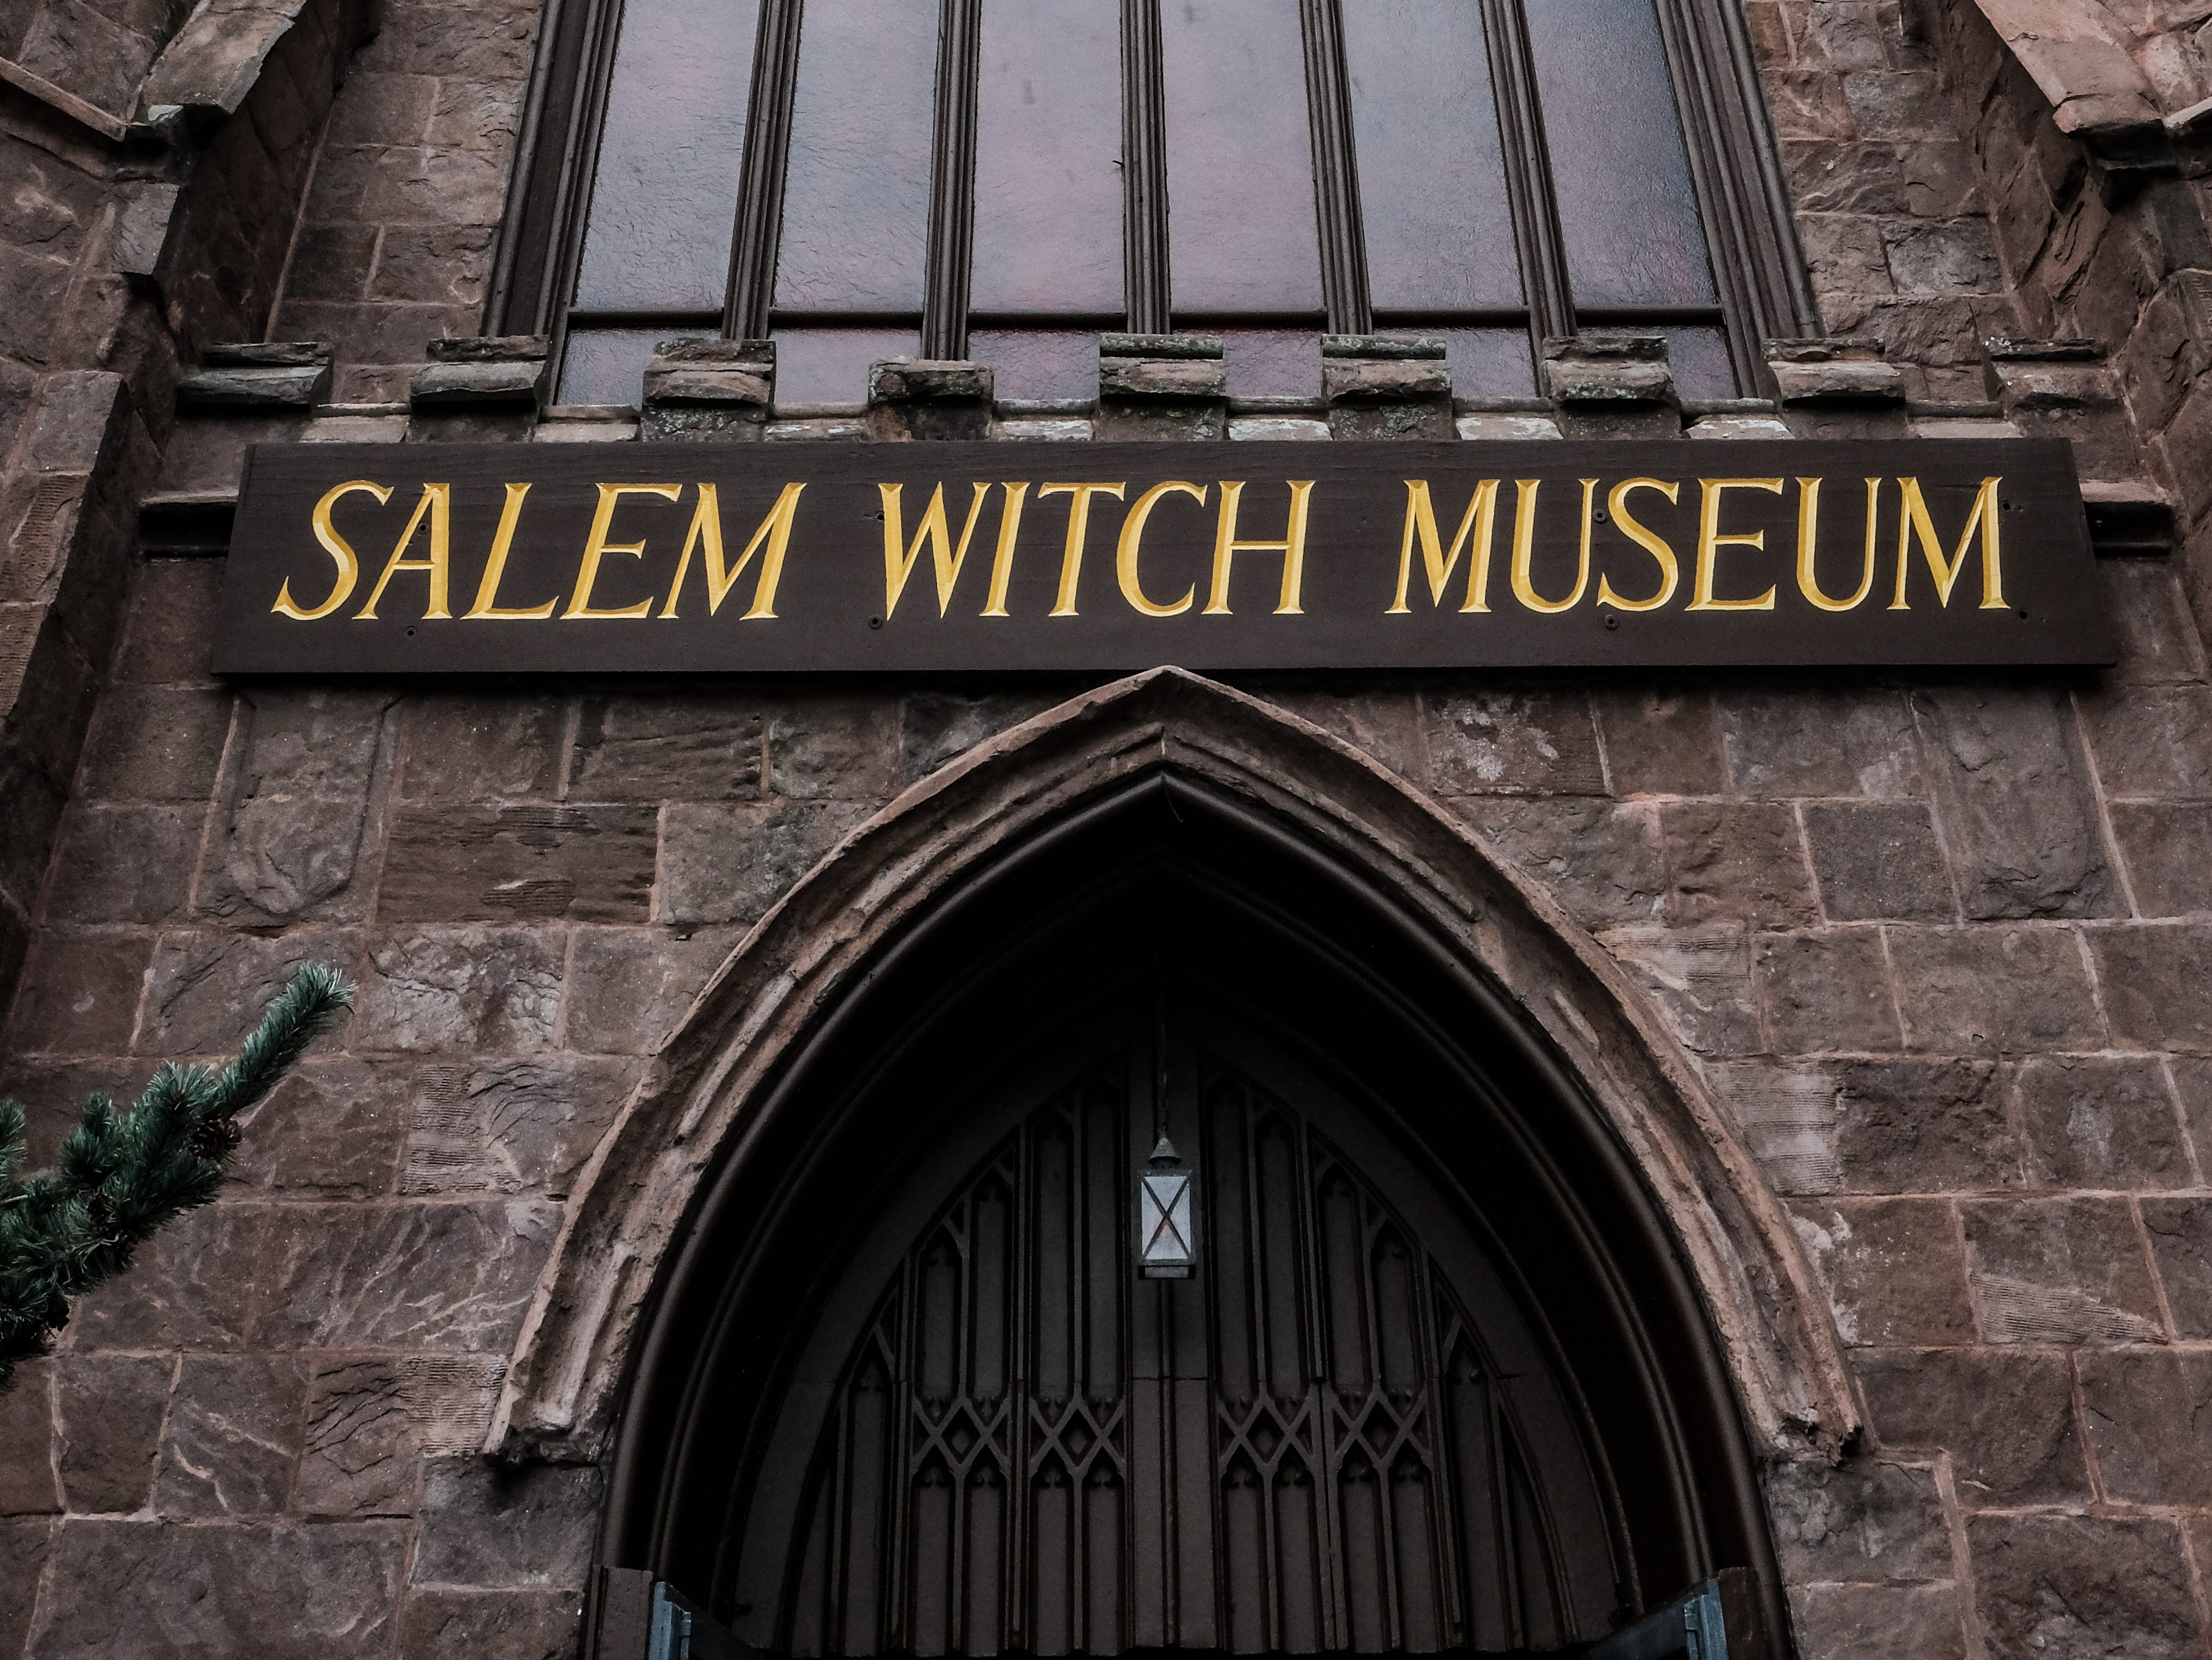 Slide 9 of 17: The city of Salem in Massachusetts comes alive in the fall. It may be a little more crowded than some of the other destinations on the list, but there's so much to do.The town is home to the historic Salem Witch Trials that occurred back in the 1600s, making it full of spooky history. There are ghost tours, graveyard tours, and haunted attractions to check out, and everything is right on the water, so you're sure to see some gorgeous views.